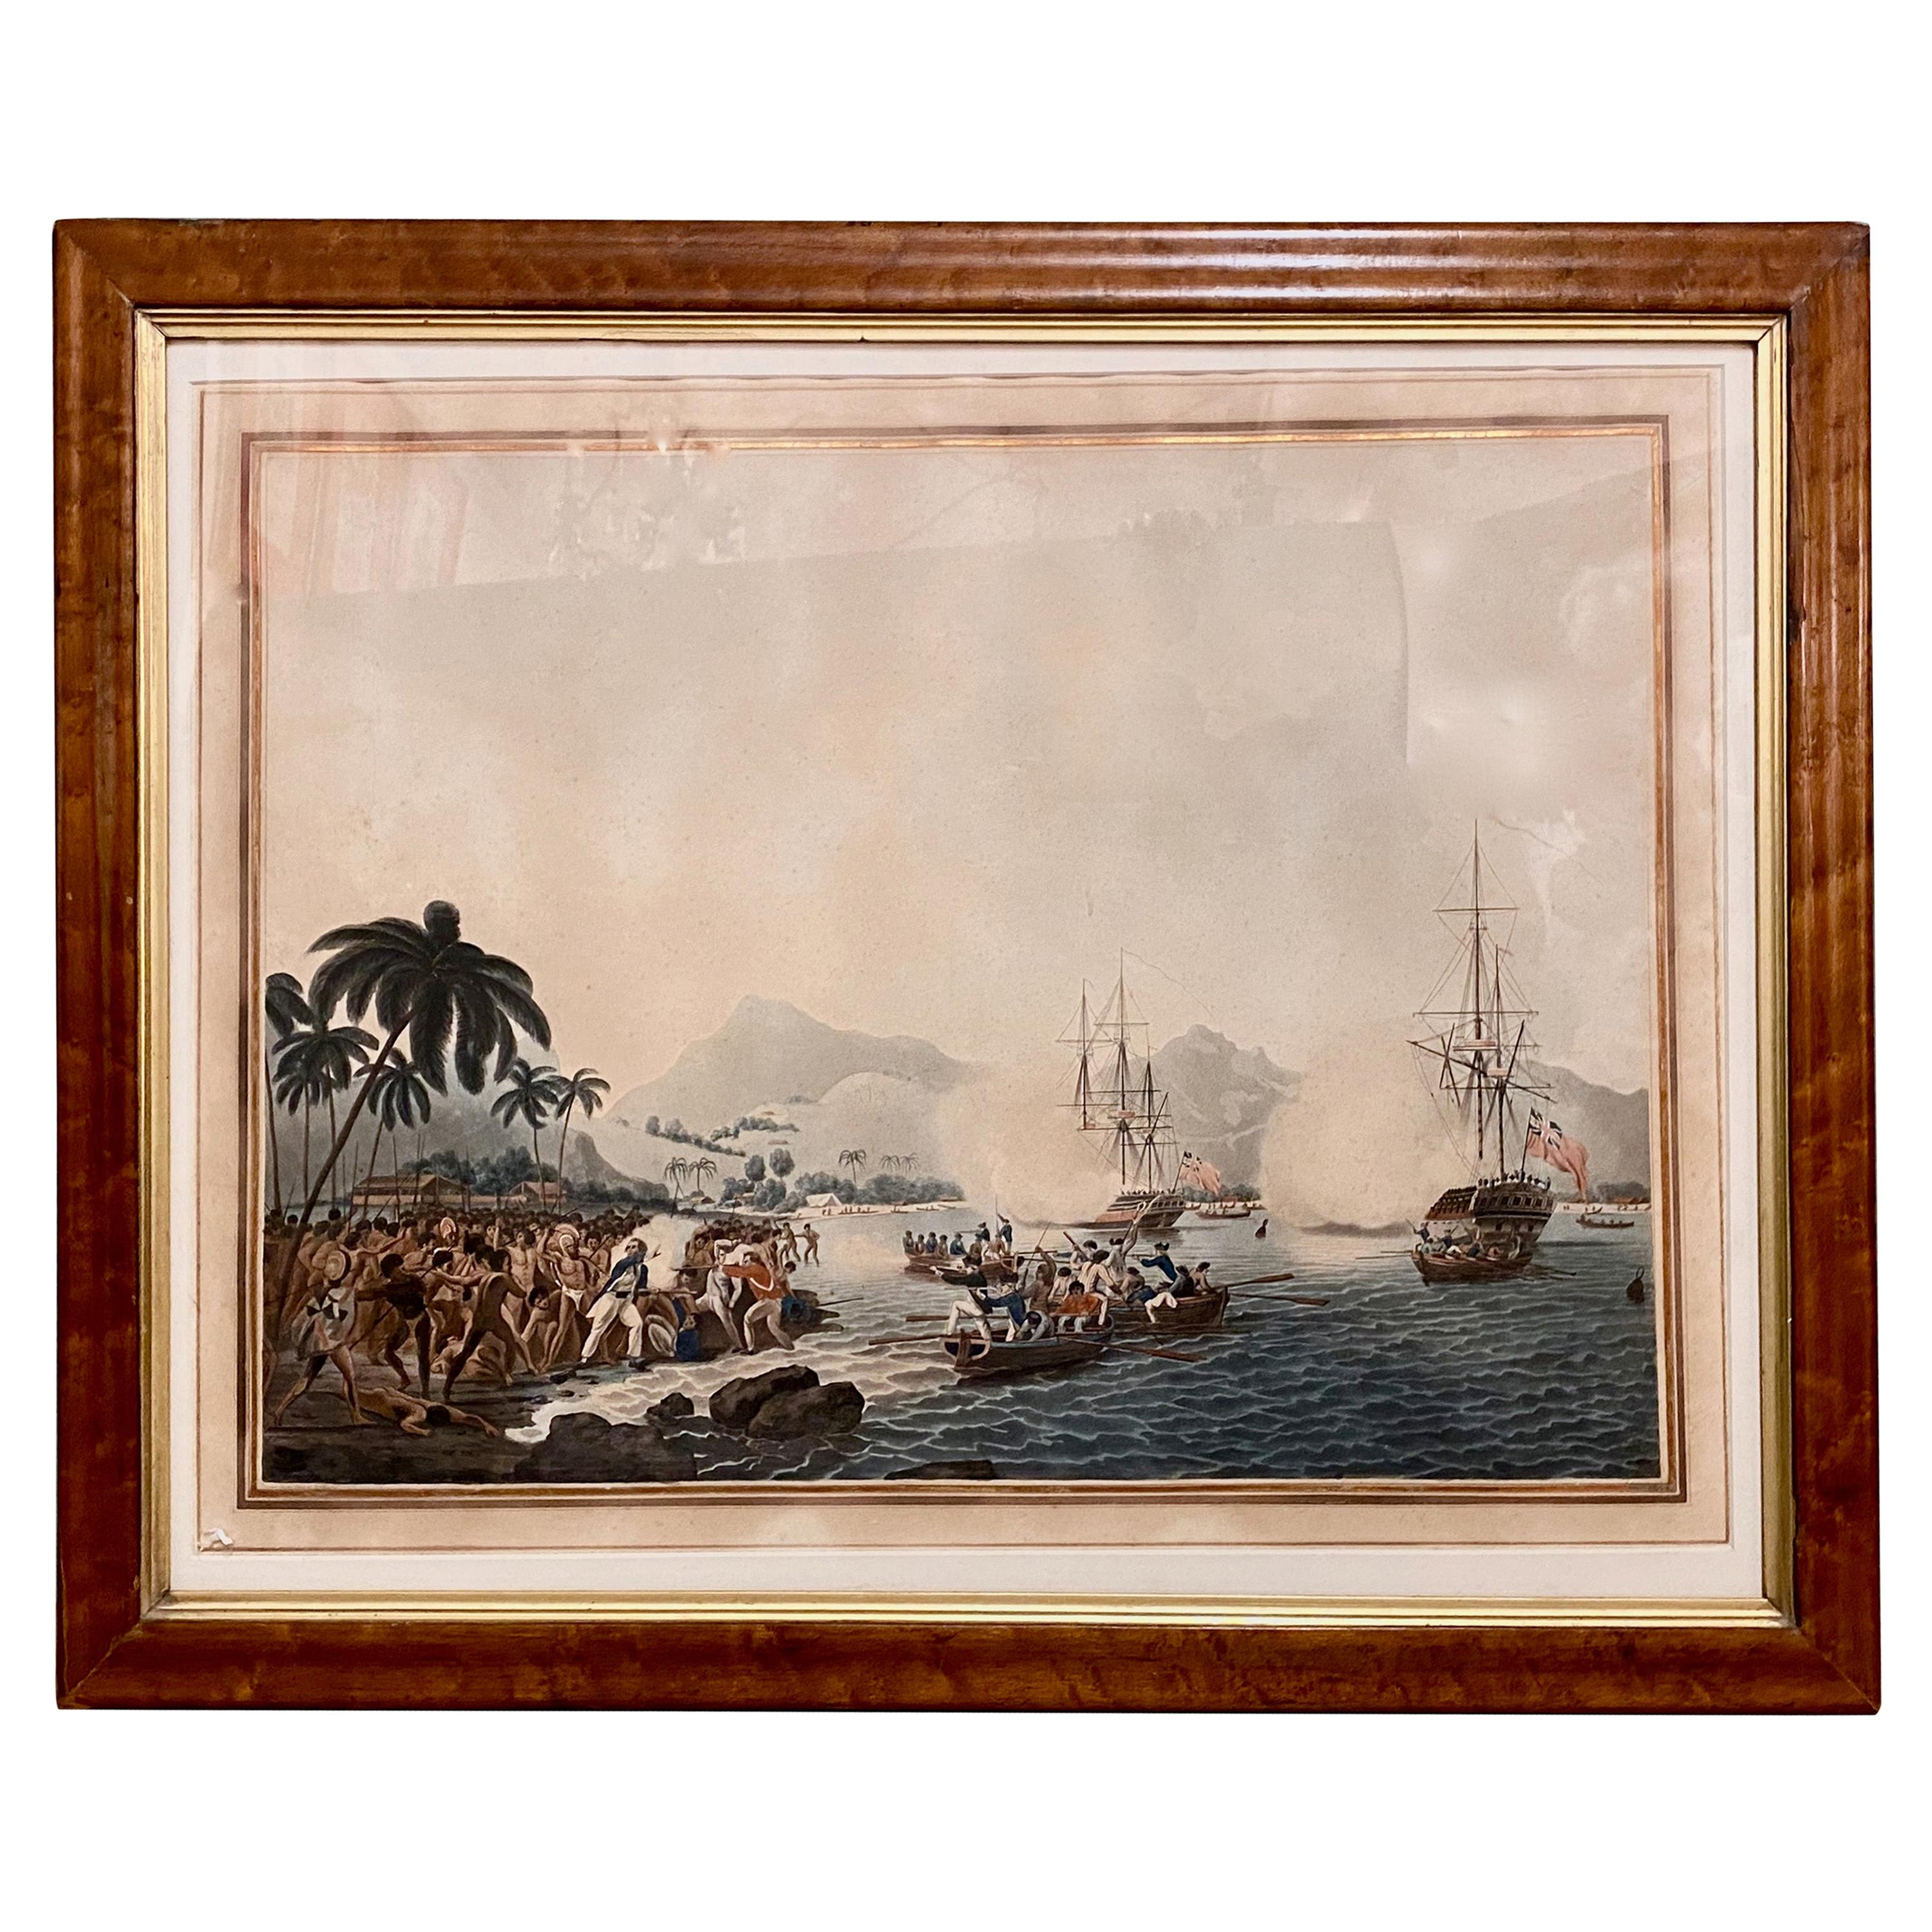 Captain Cook Hand-Colored Engraving